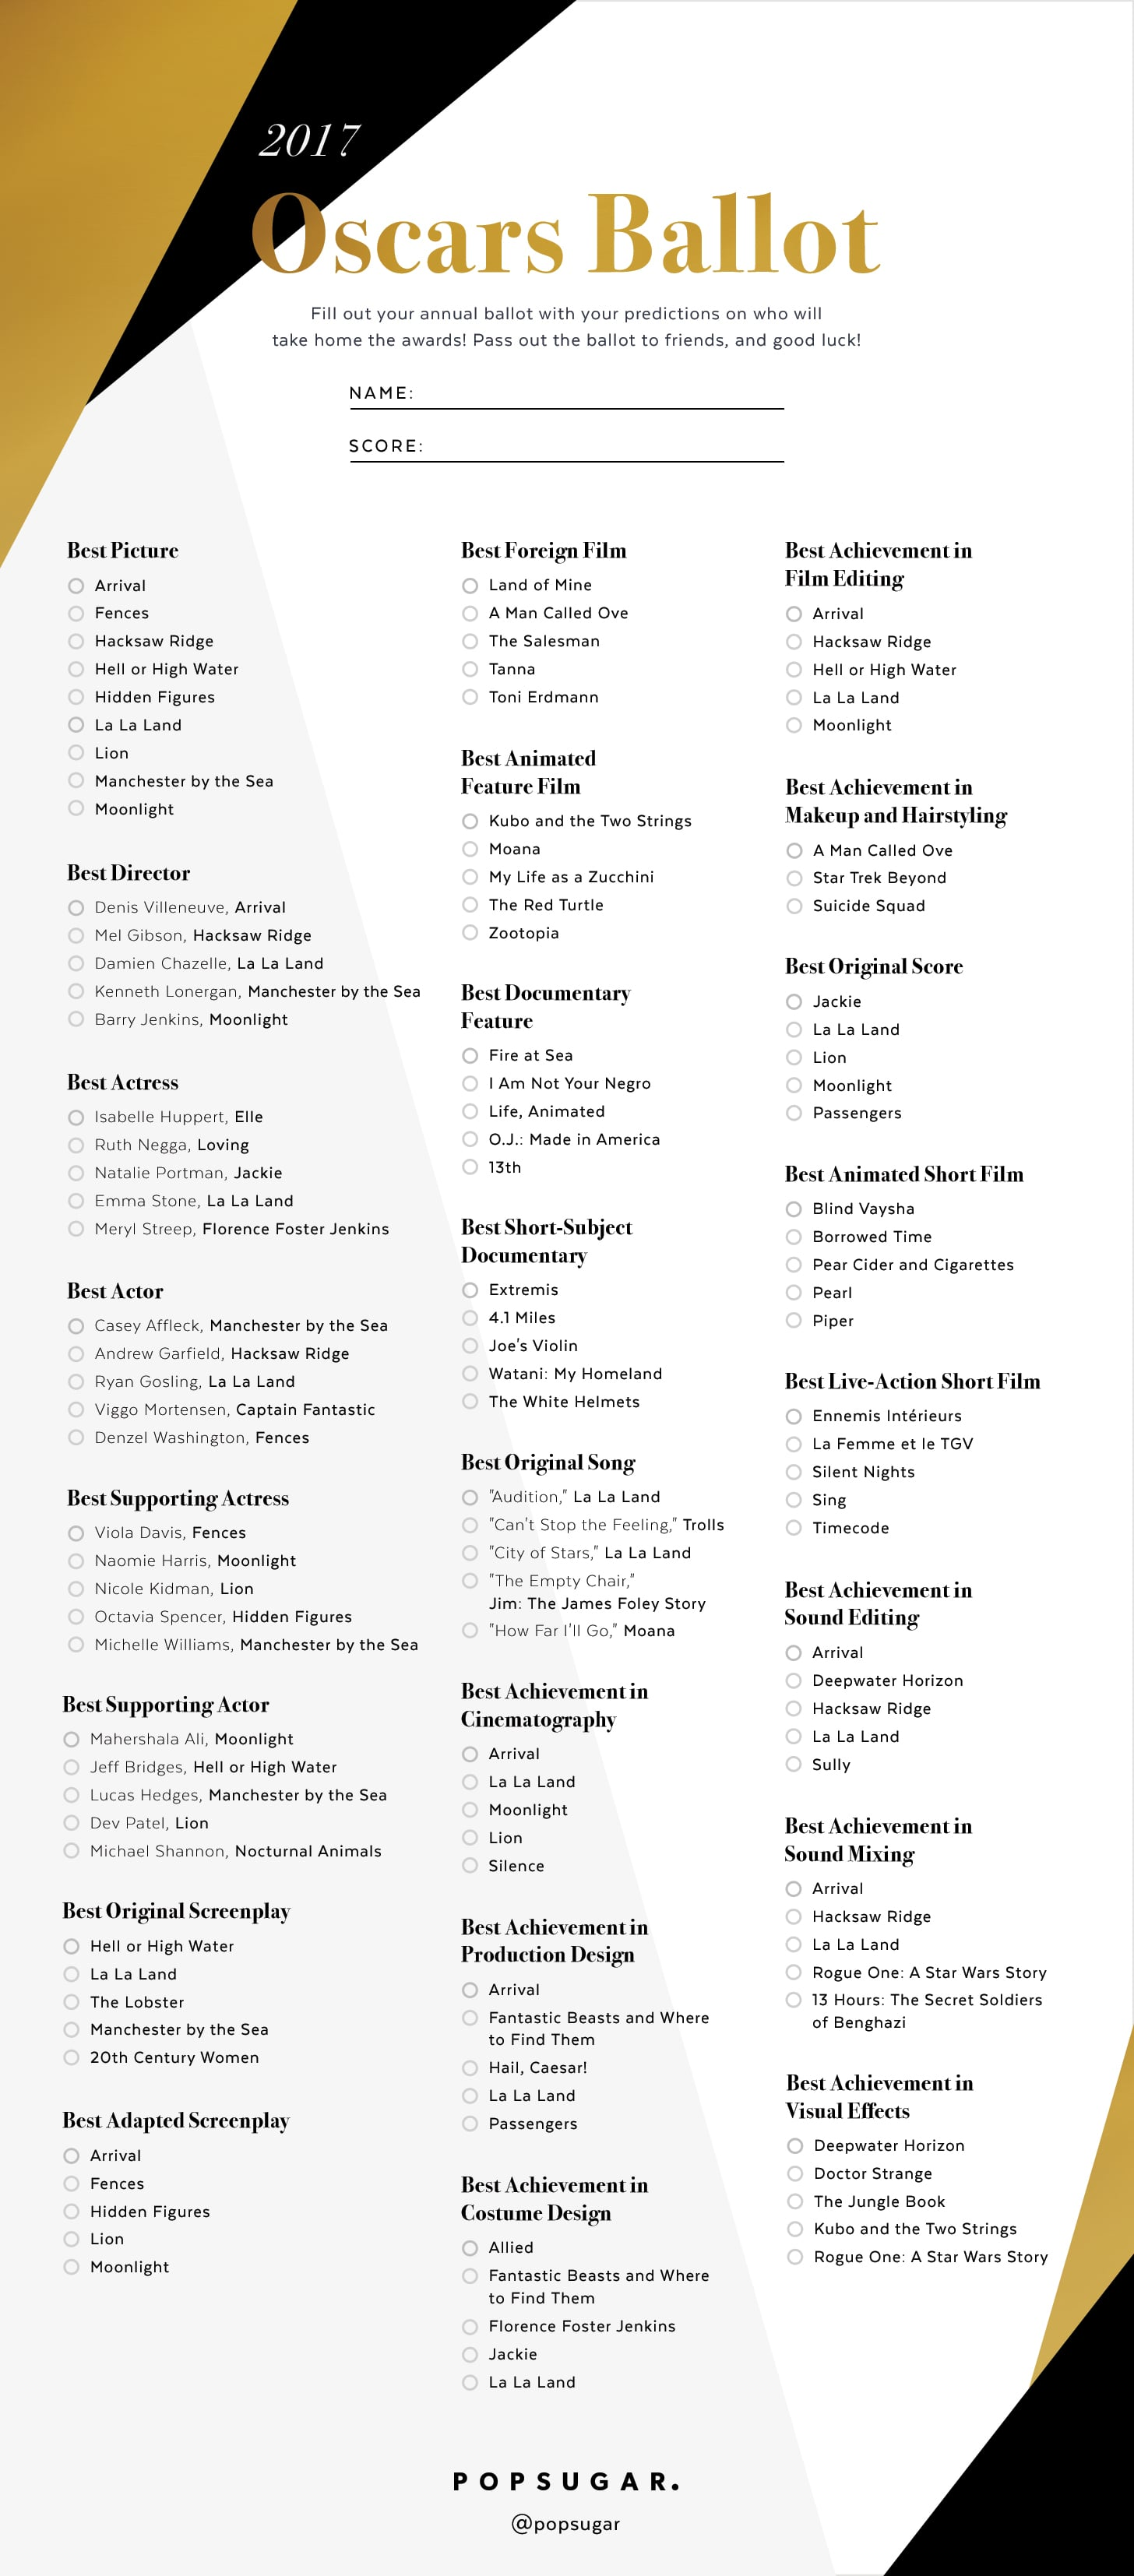 Printable Oscars Ballot 2017 | POPSUGAR Entertainment